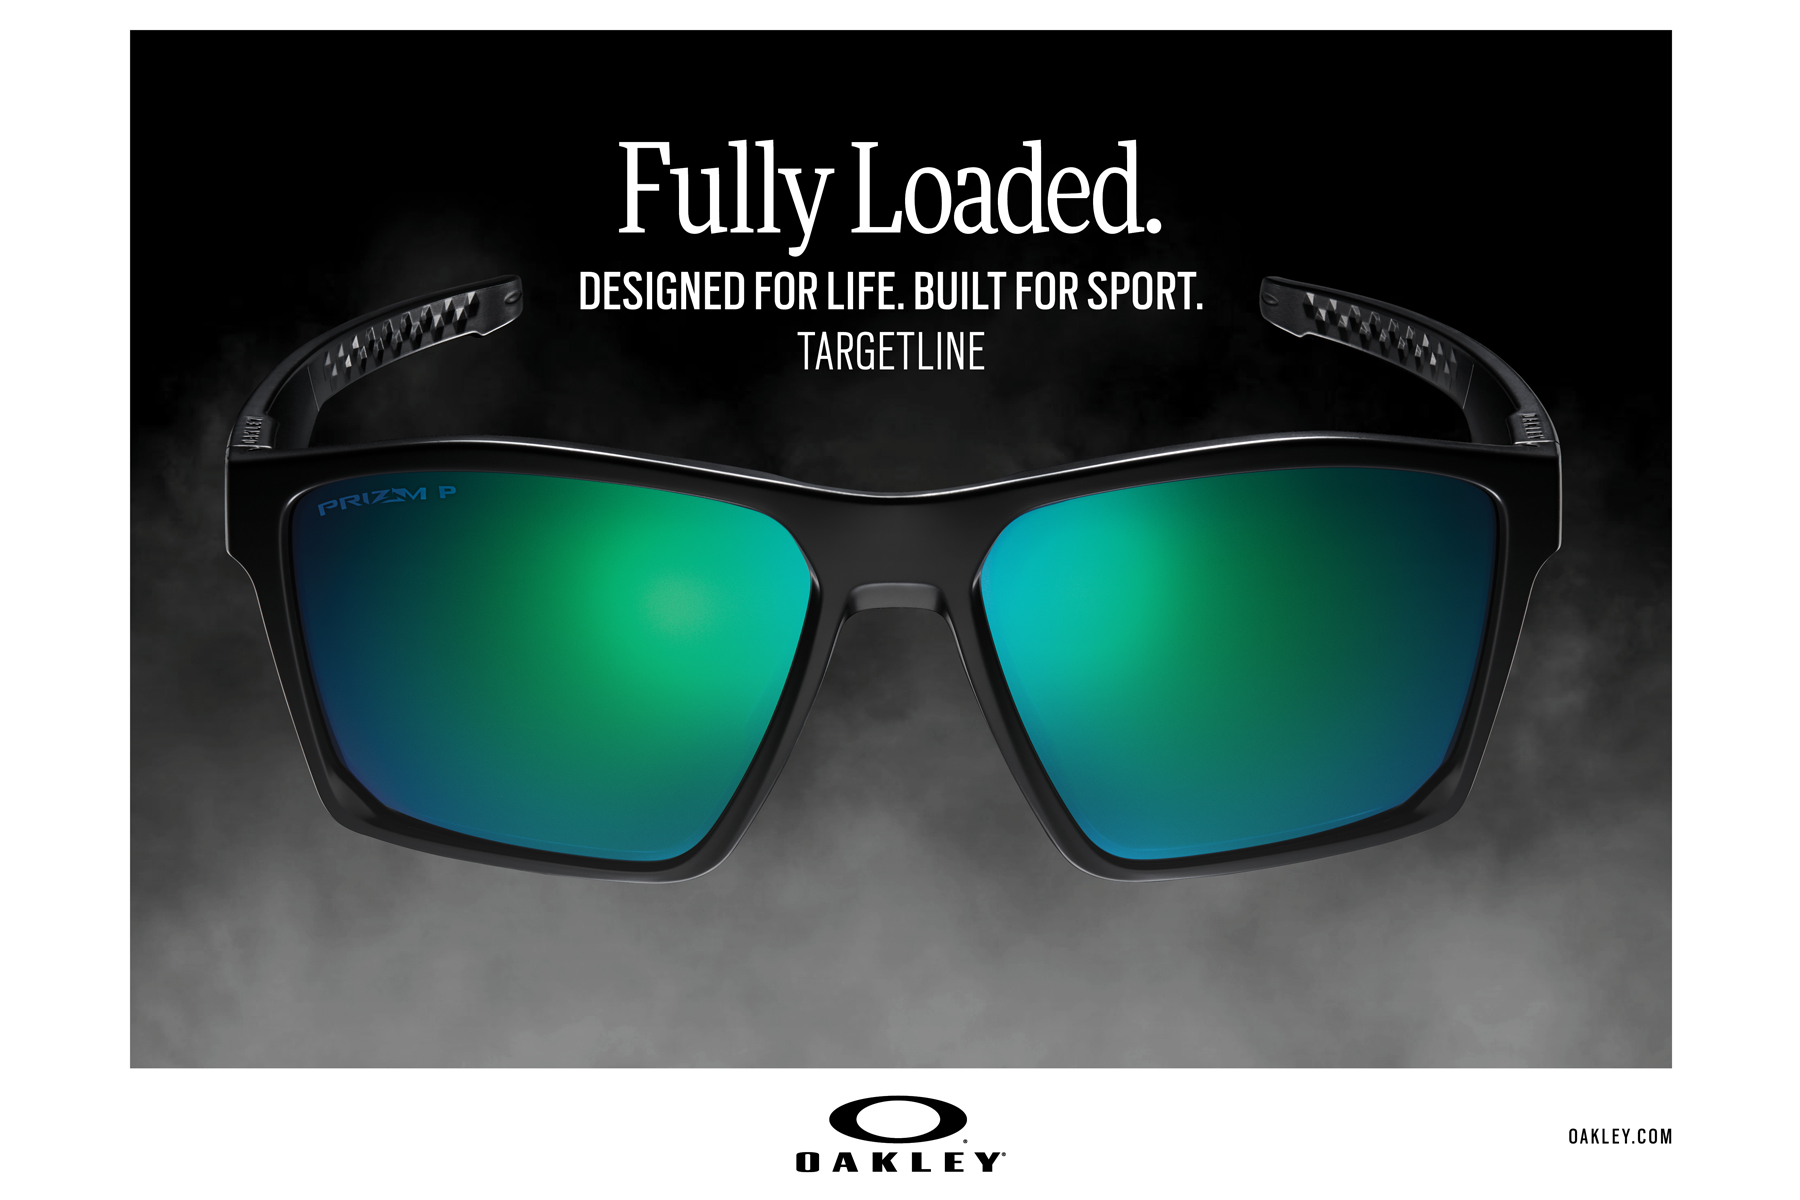 Oakley_FULLY-LOADED